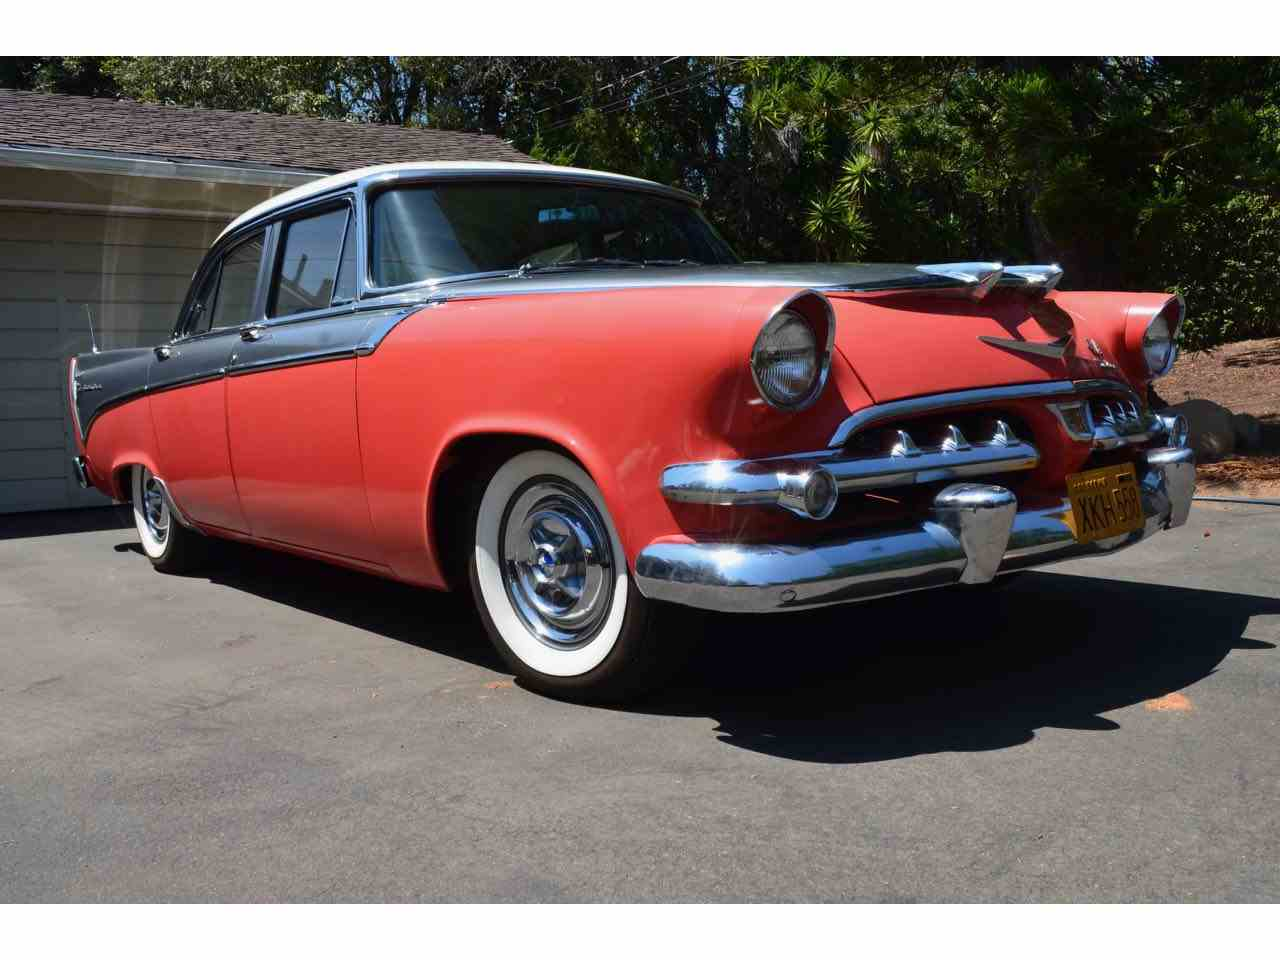 Classic Dodge Sedan For Sale On Classiccars Com Available